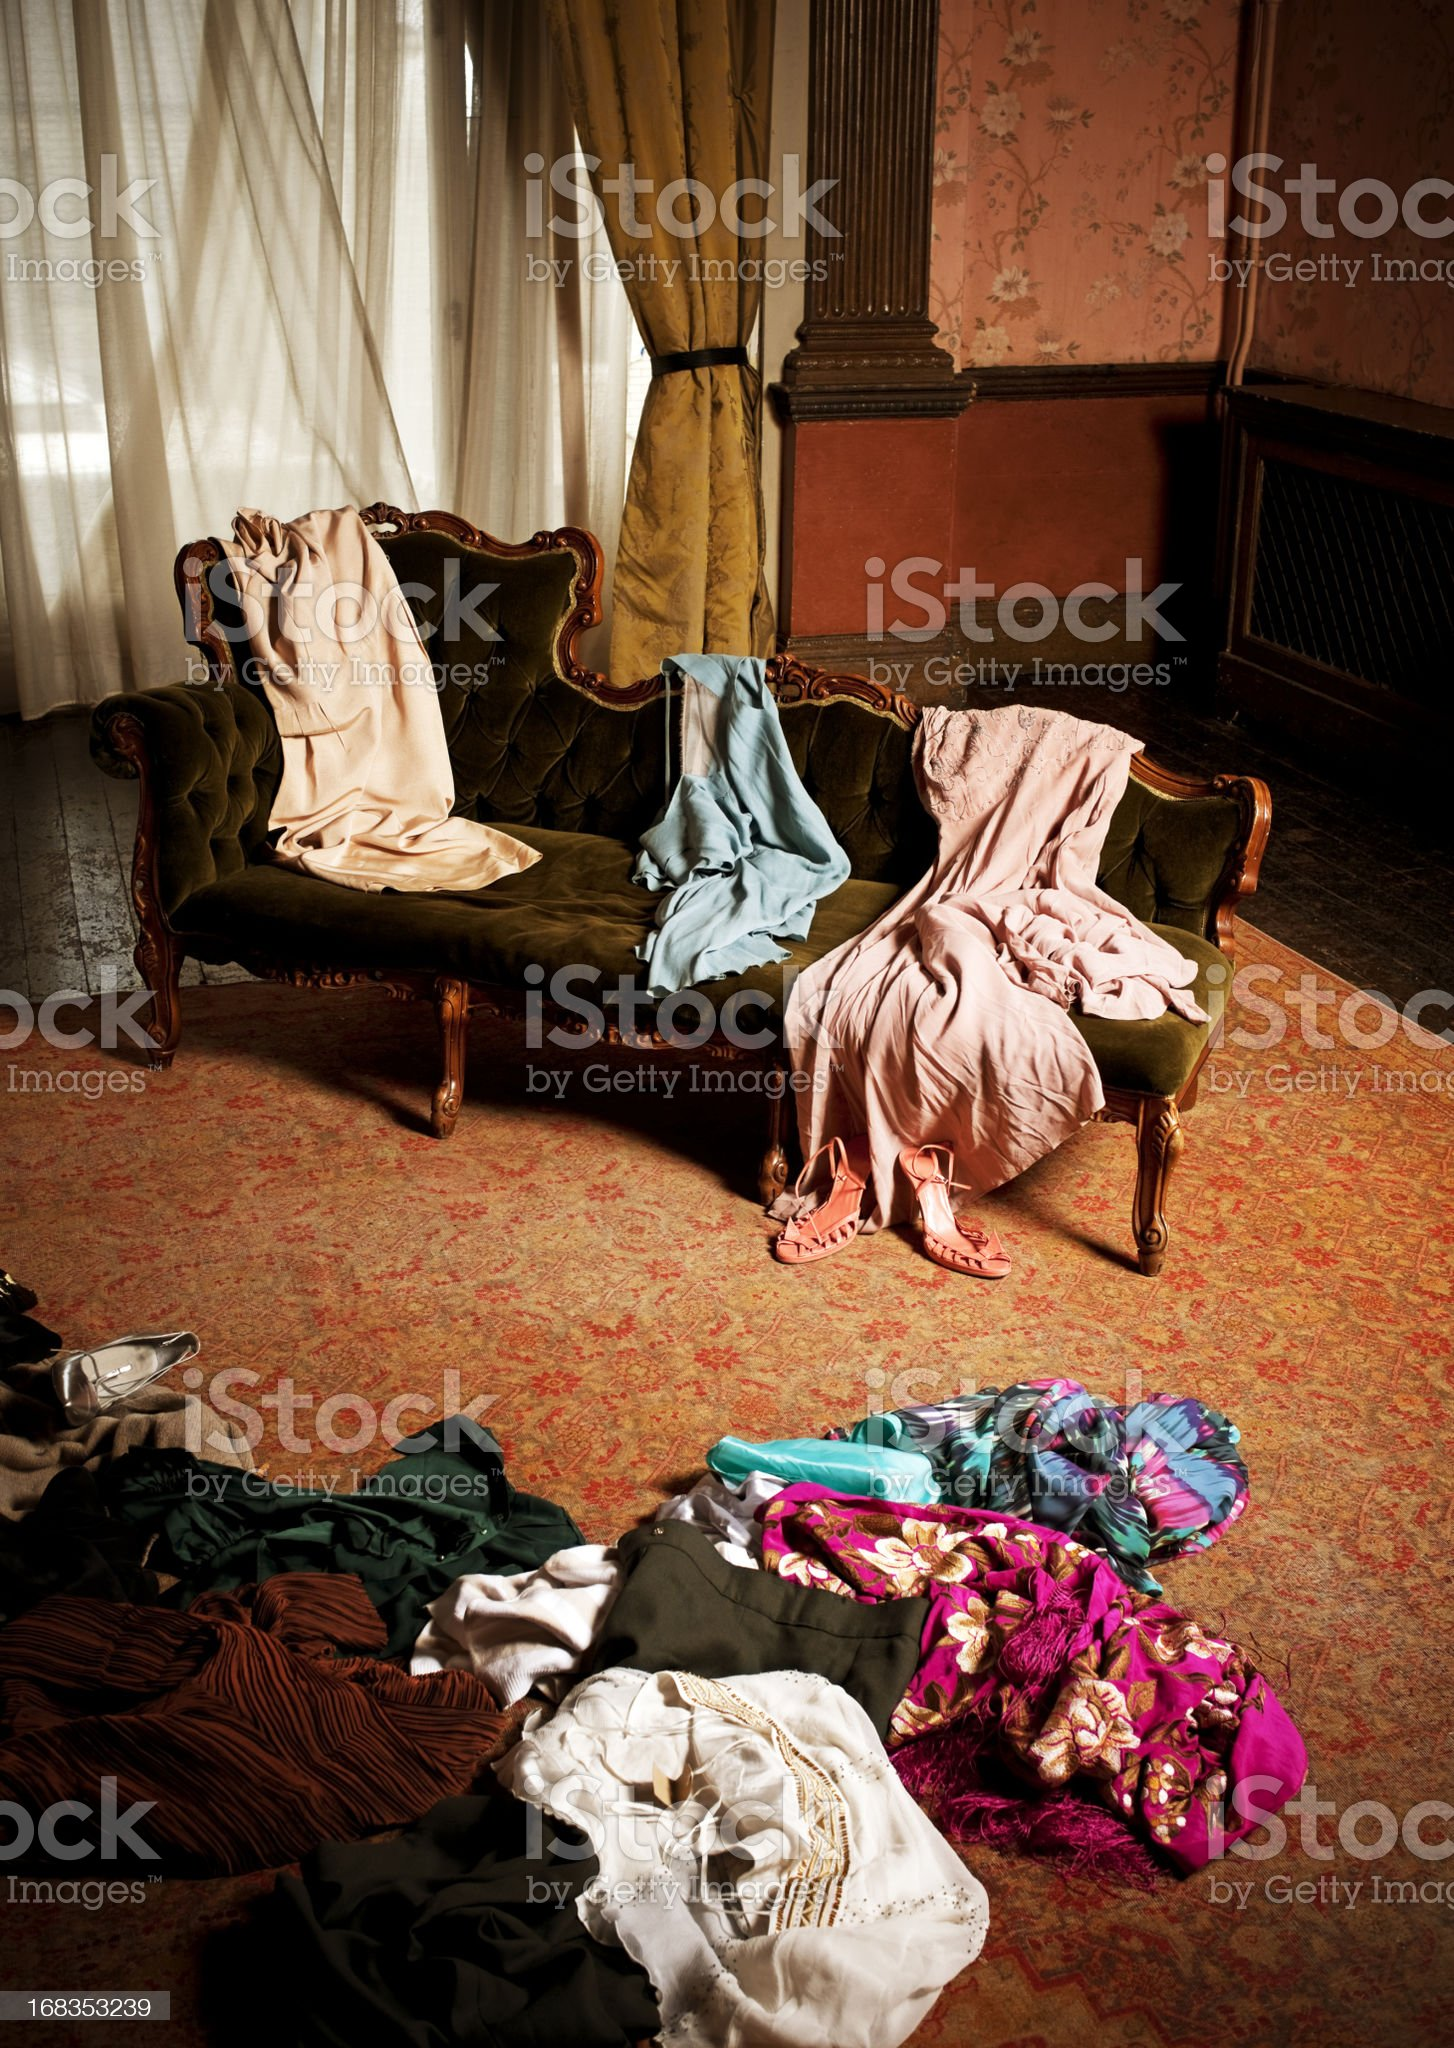 Woman's Dressing Room, Clothing Scattered royalty-free stock photo